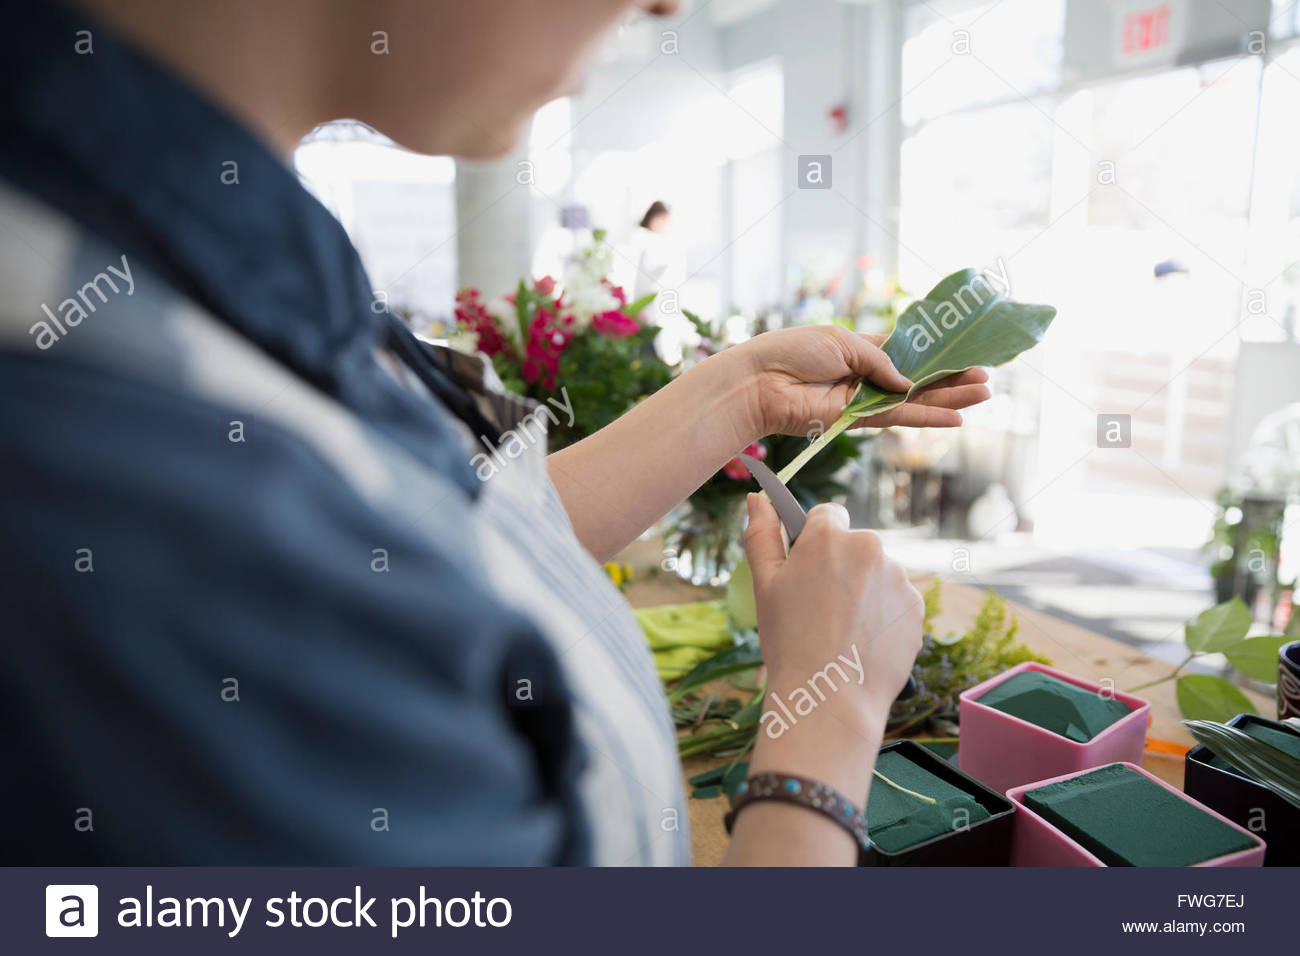 Florist trimming stems in flower shop - Stock Image